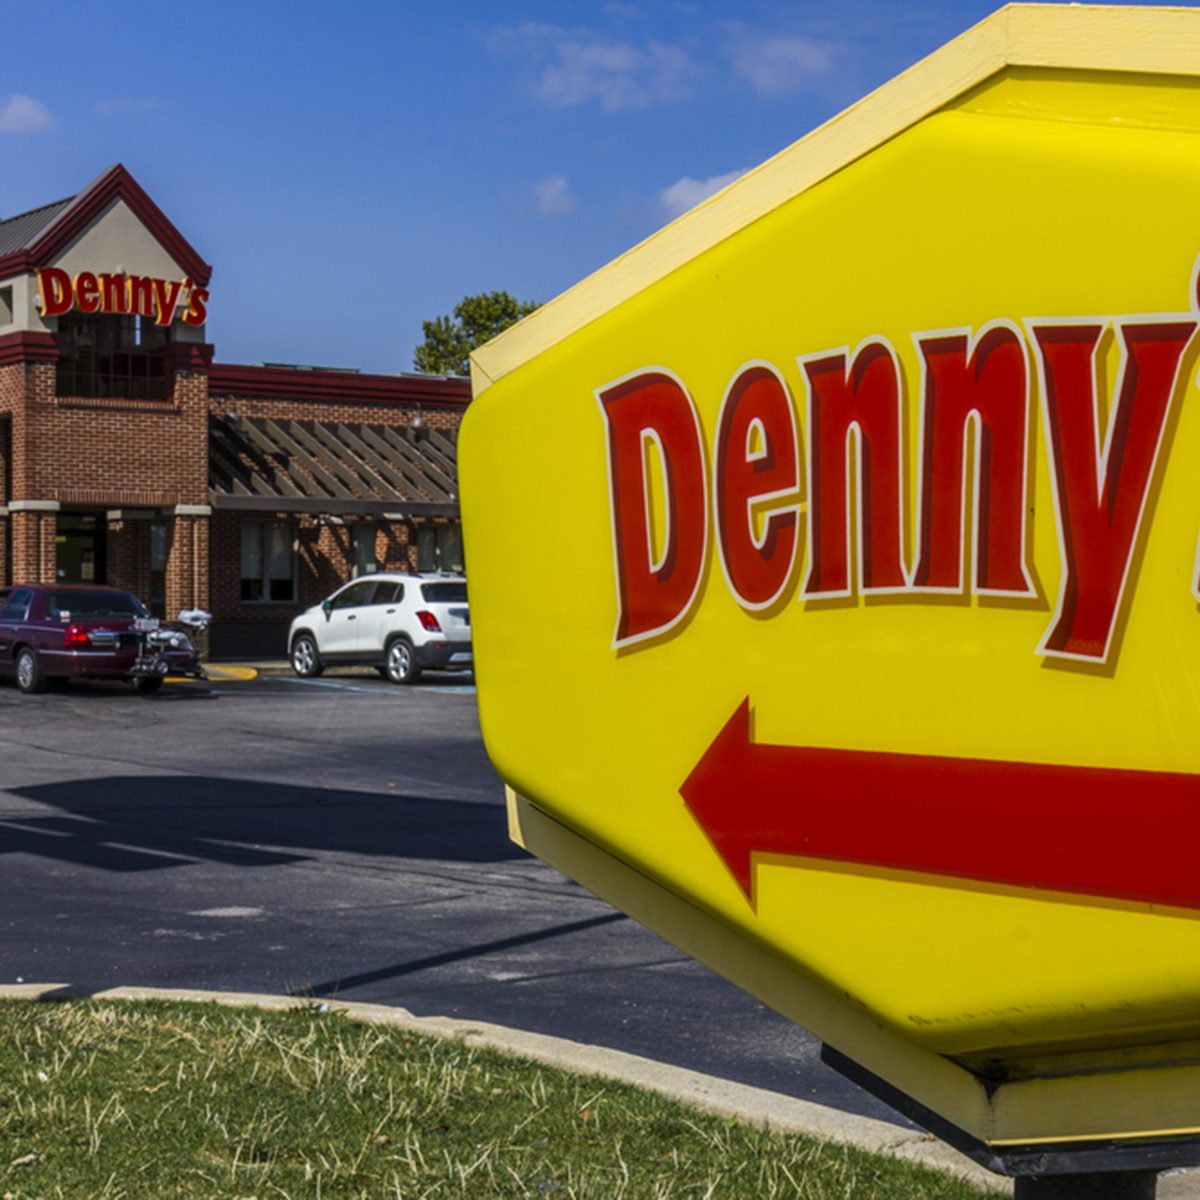 Denny's Fast casual restaurant and diner.